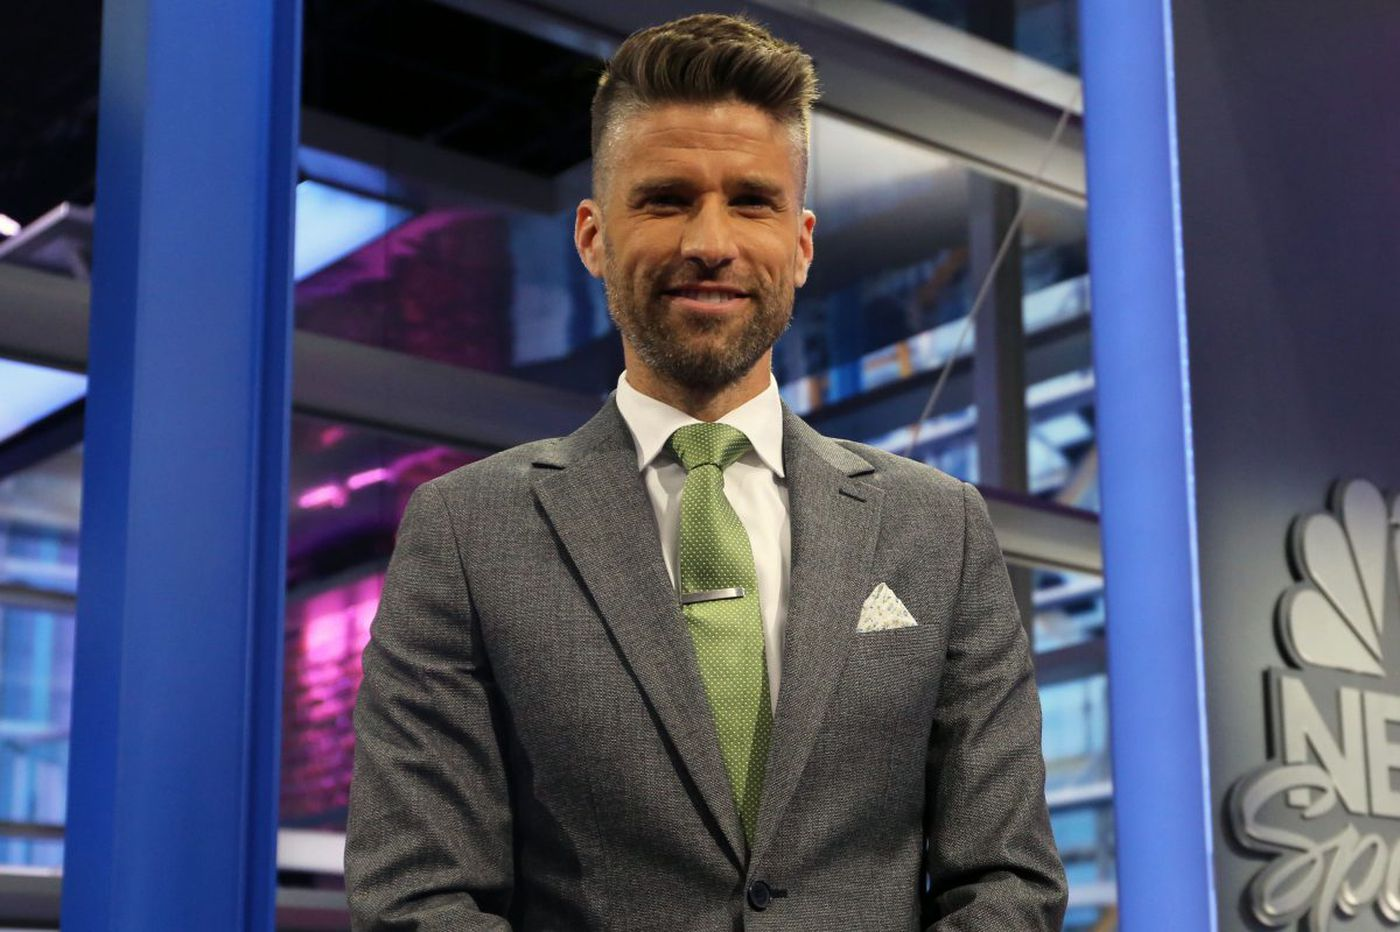 Q&A with Kyle Martino, U.S. Soccer Federation presidential candidate